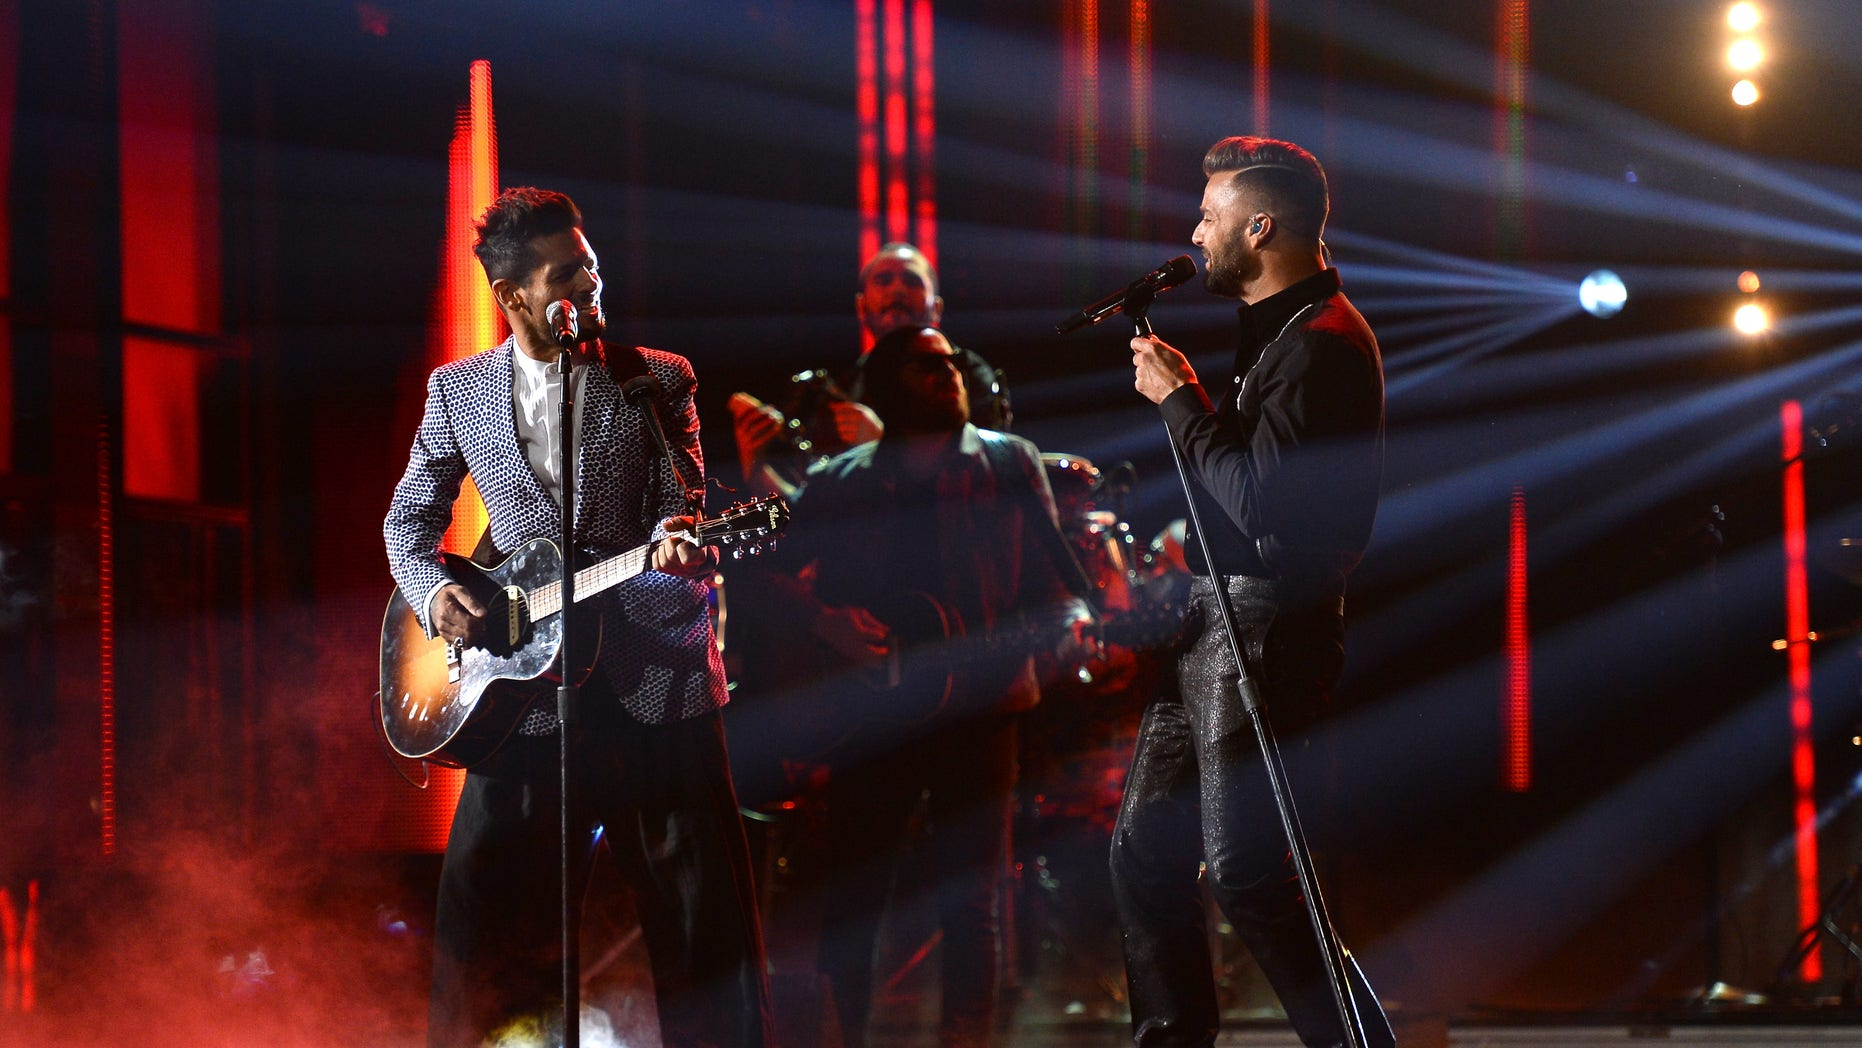 LAS VEGAS, NV - NOVEMBER 21:  Musicians Draco Rosa (L) and Ricky Martin perform onstage during the 14th Annual Latin GRAMMY Awards held at the Mandalay Bay Events Center on November 21, 2013 in Las Vegas, Nevada.  (Photo by Ethan Miller/Getty Images for LARAS)